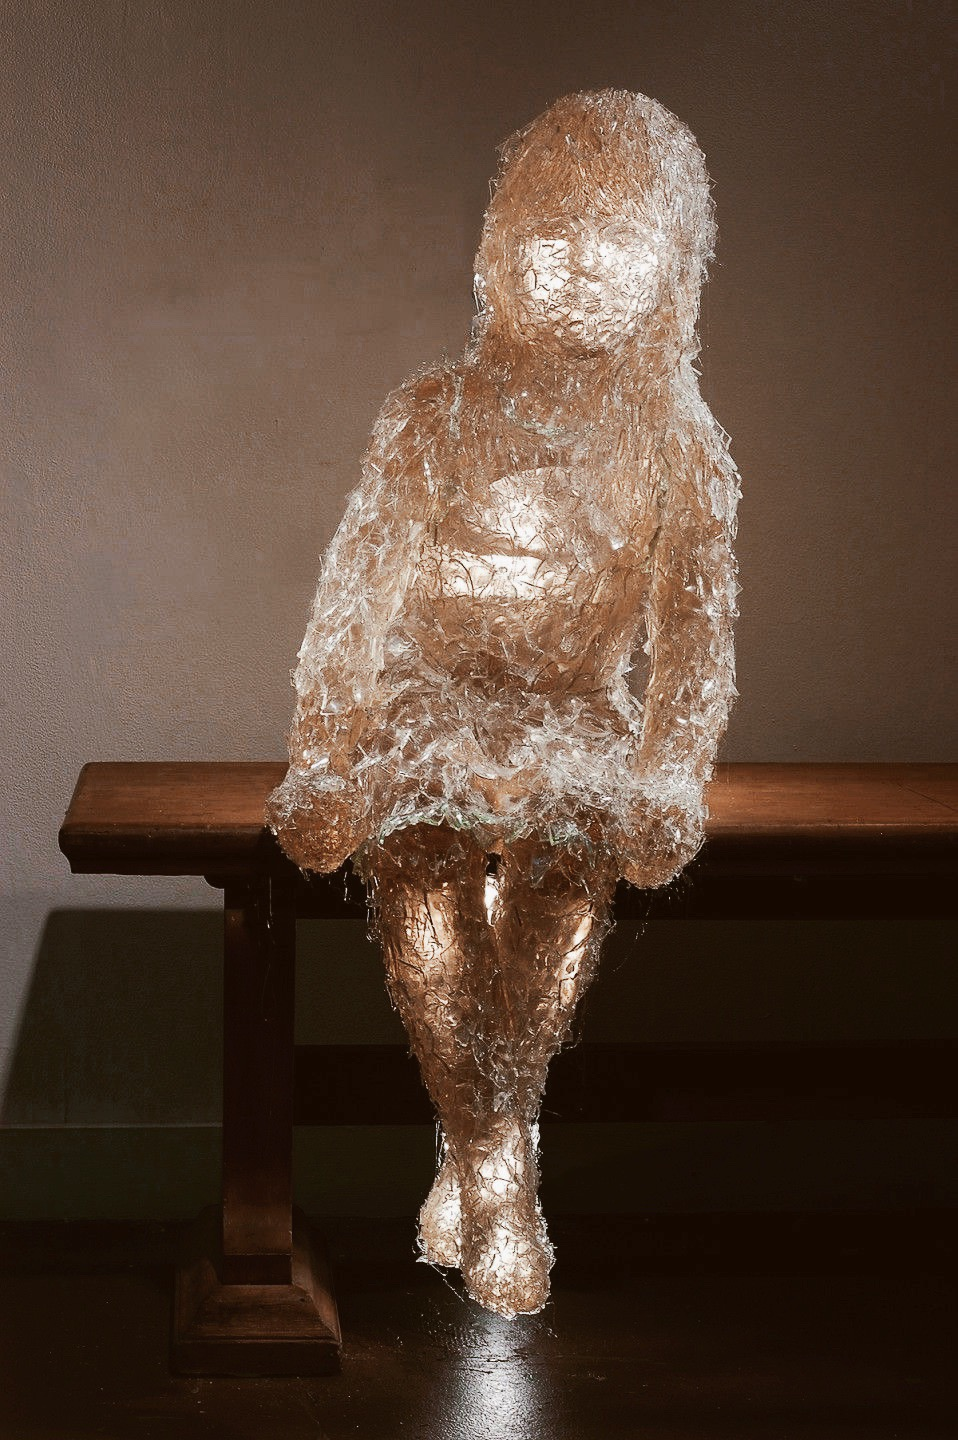 Sculpture by Ana Teresa Fernandez - It sure looks like Miss Navy to me.